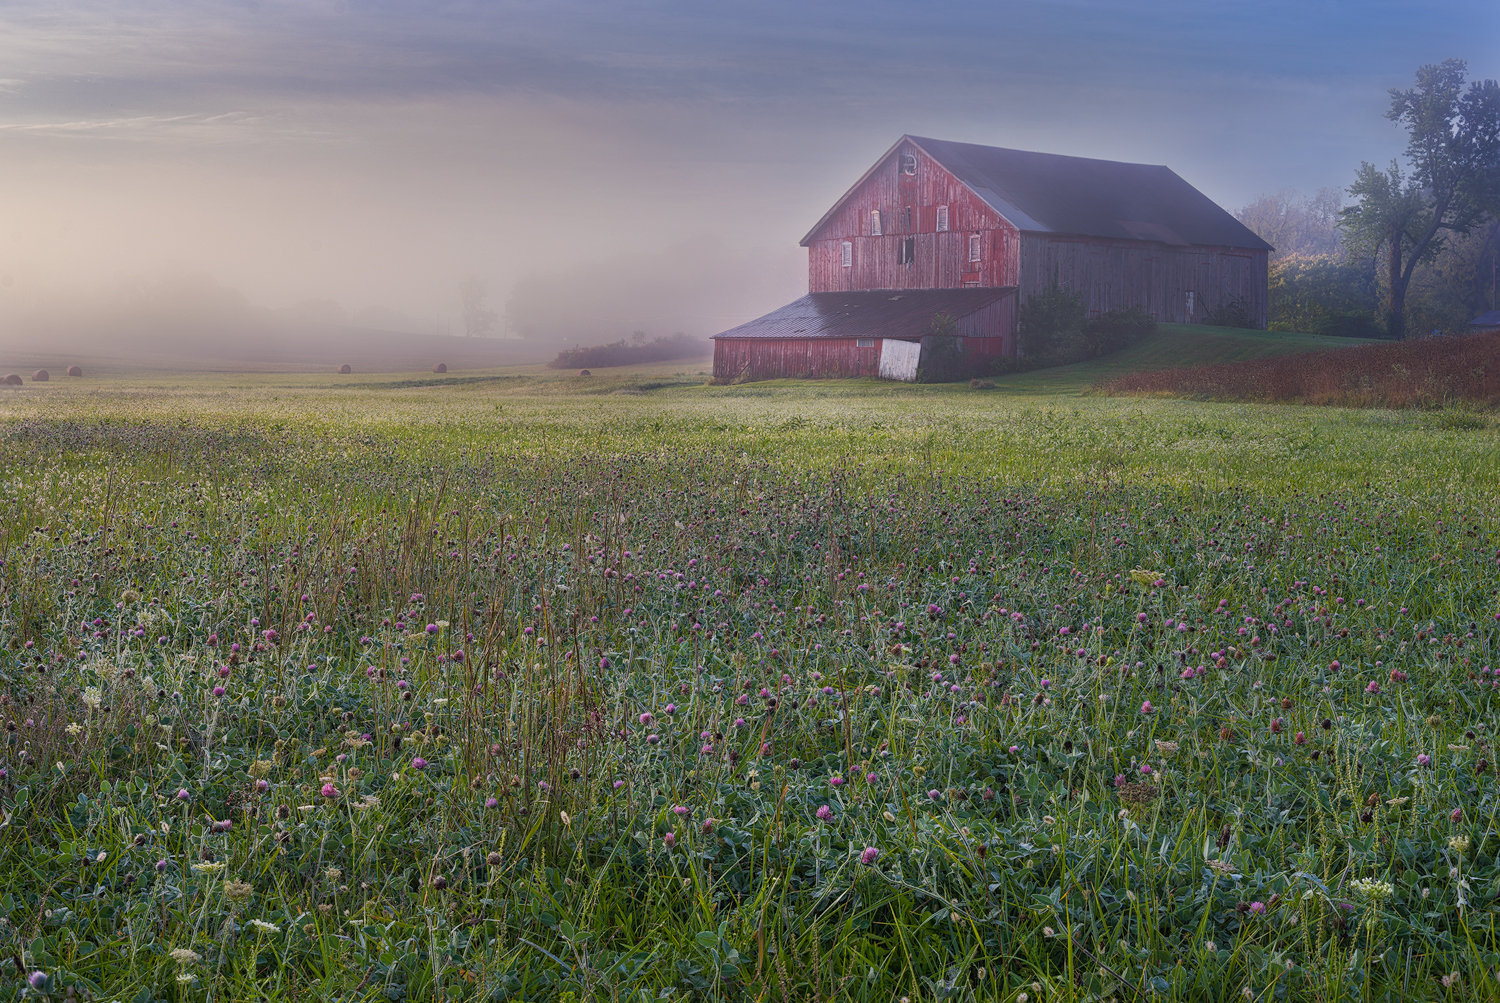 The Soft Light of Early Morning is Filtered Through a Layer of Fog.